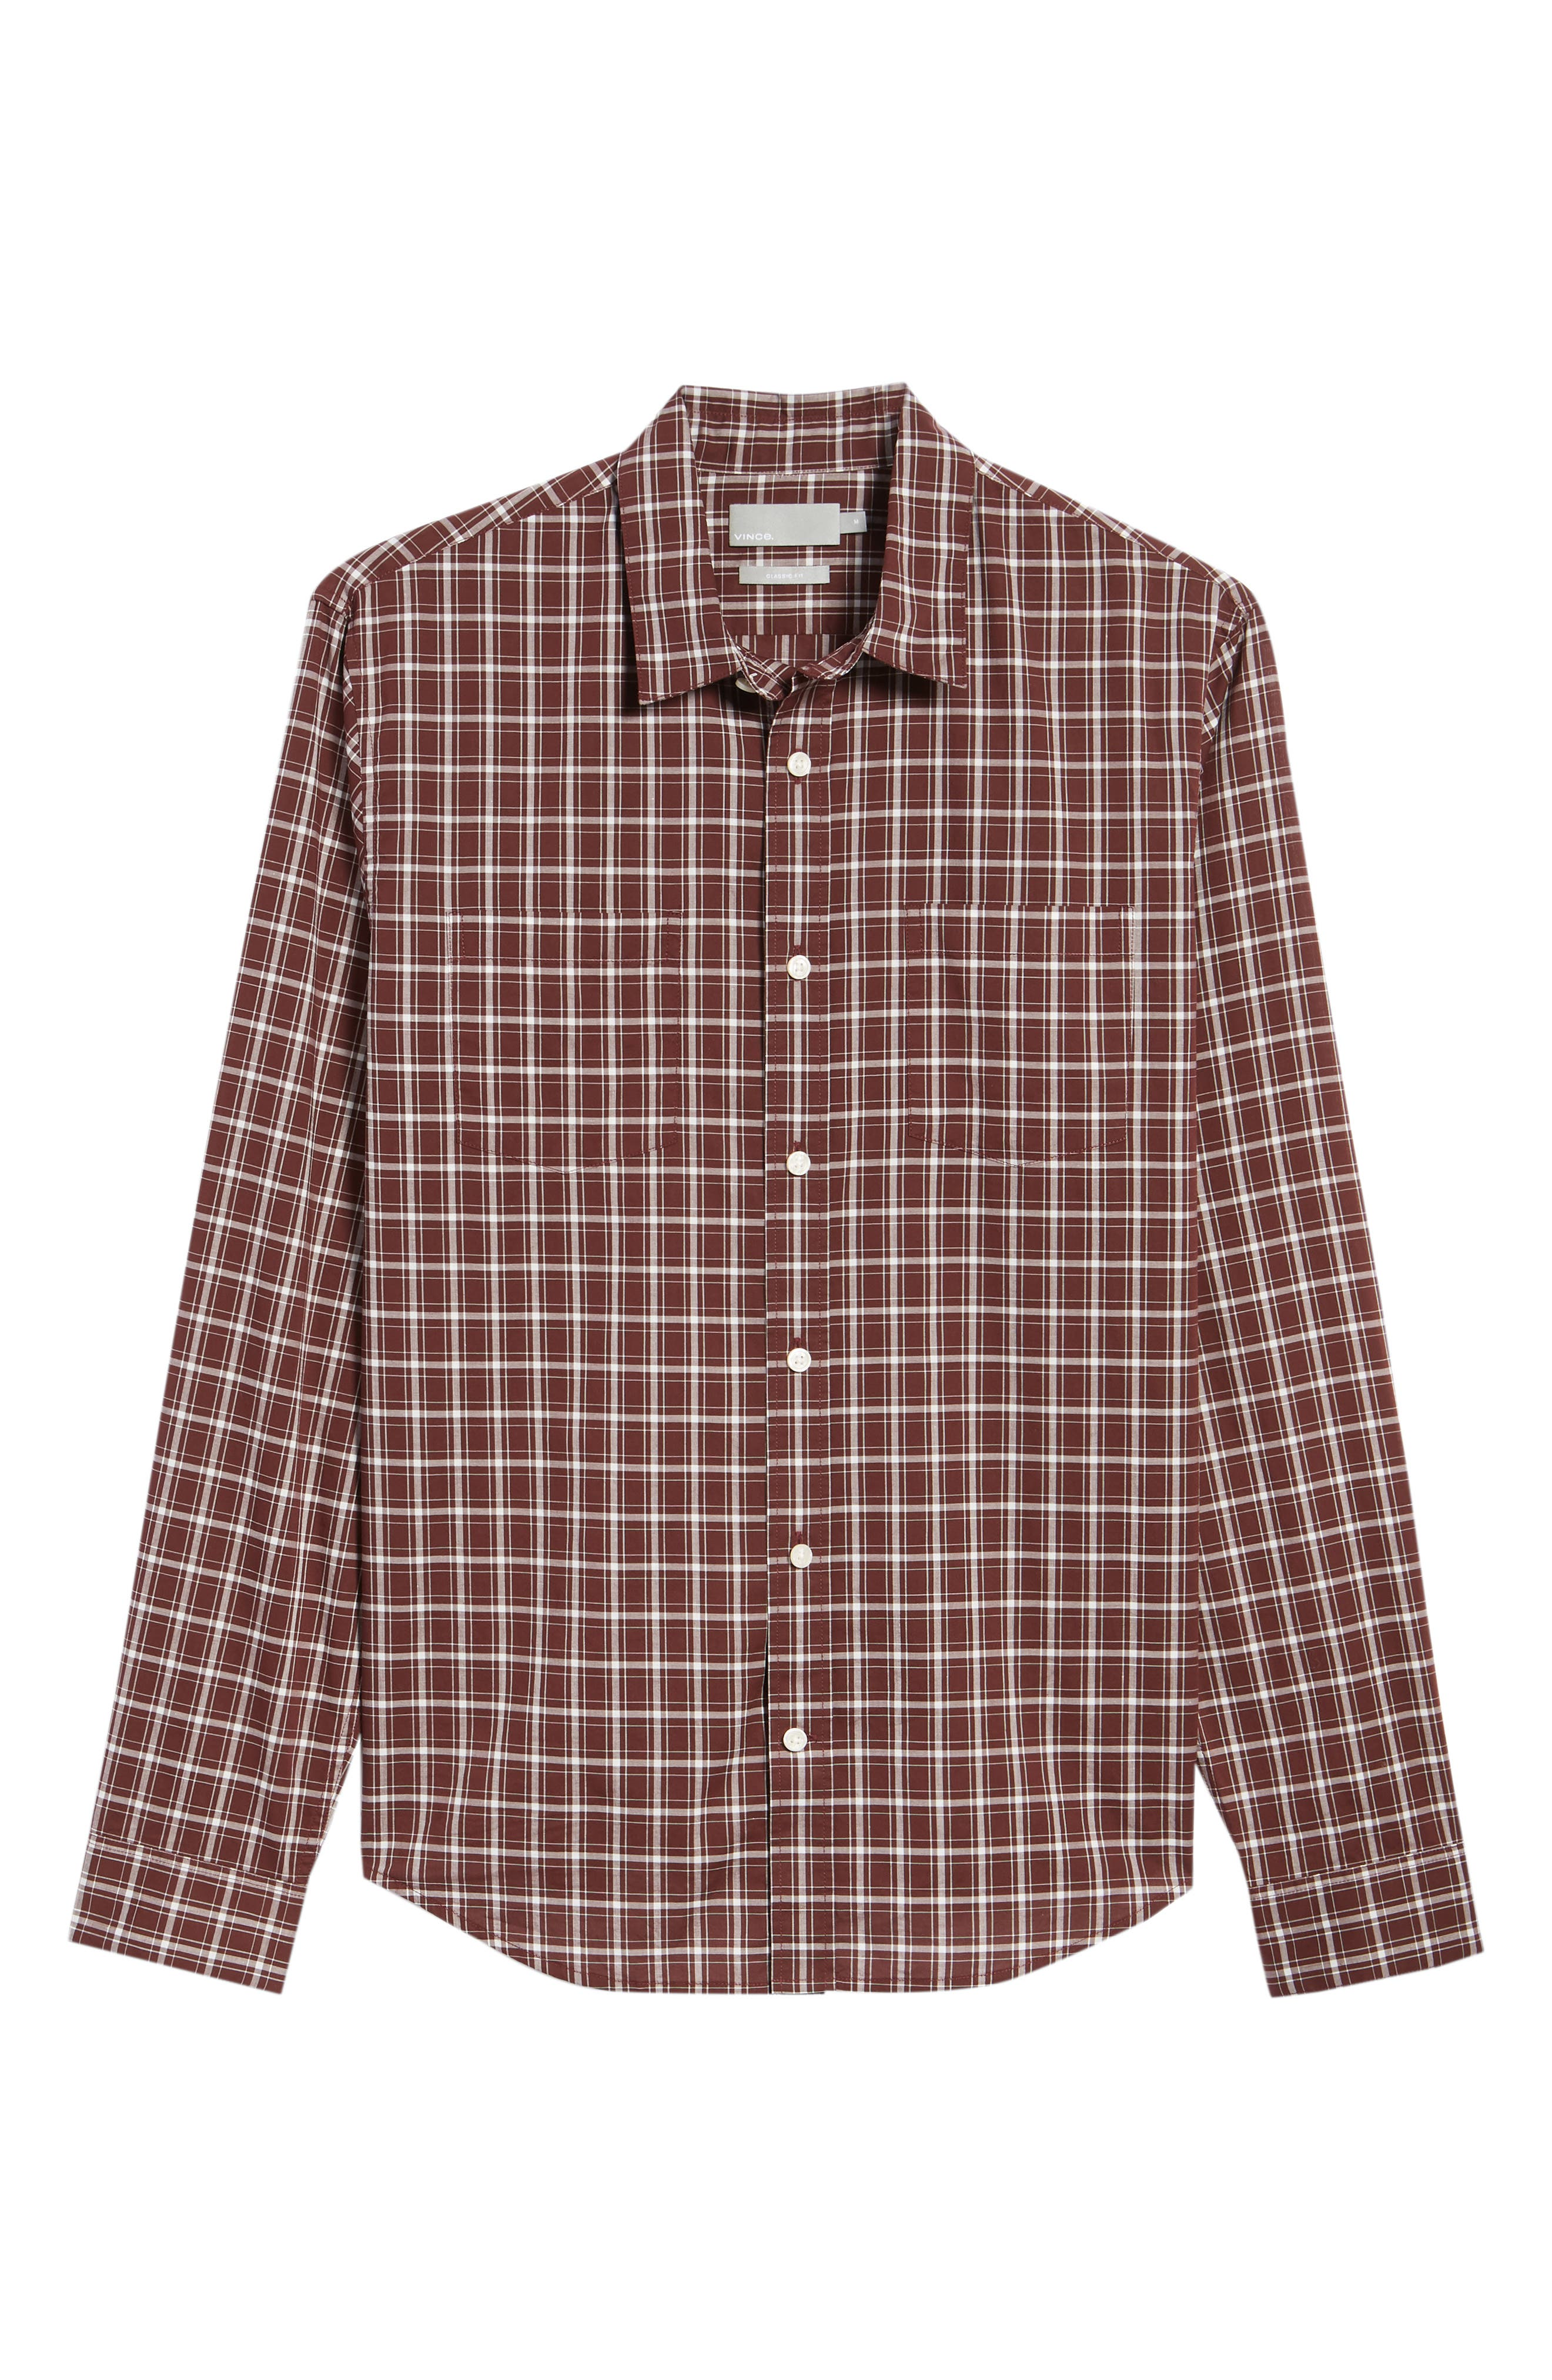 Classic Fit Plaid Sport Shirt,                             Alternate thumbnail 6, color,                             BLACK CHERRY